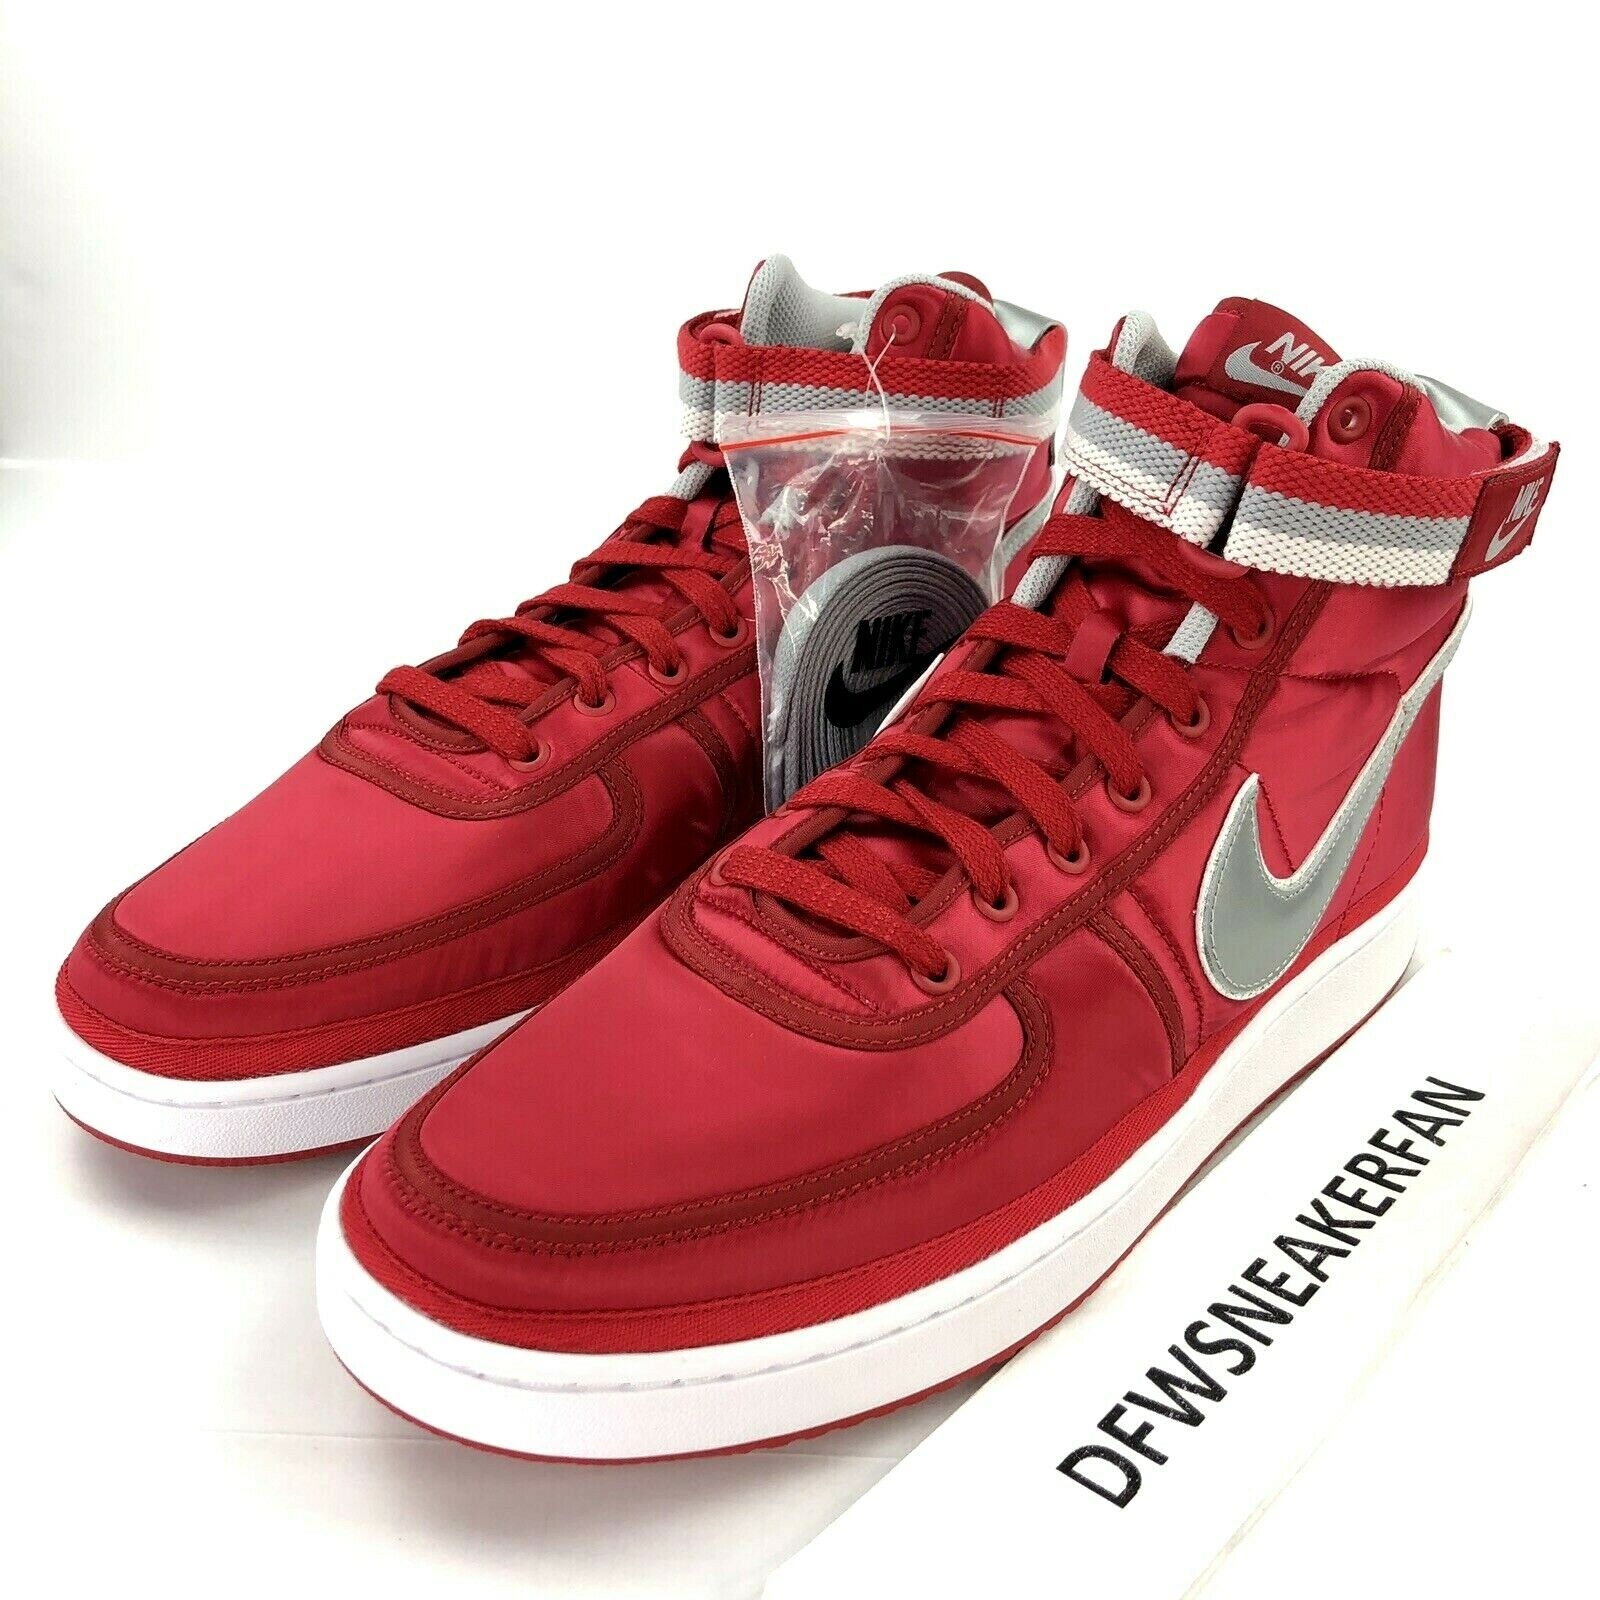 Nike Vandal High Supreme Men's 14 University Red Silver shoes AH8652-600 NEW